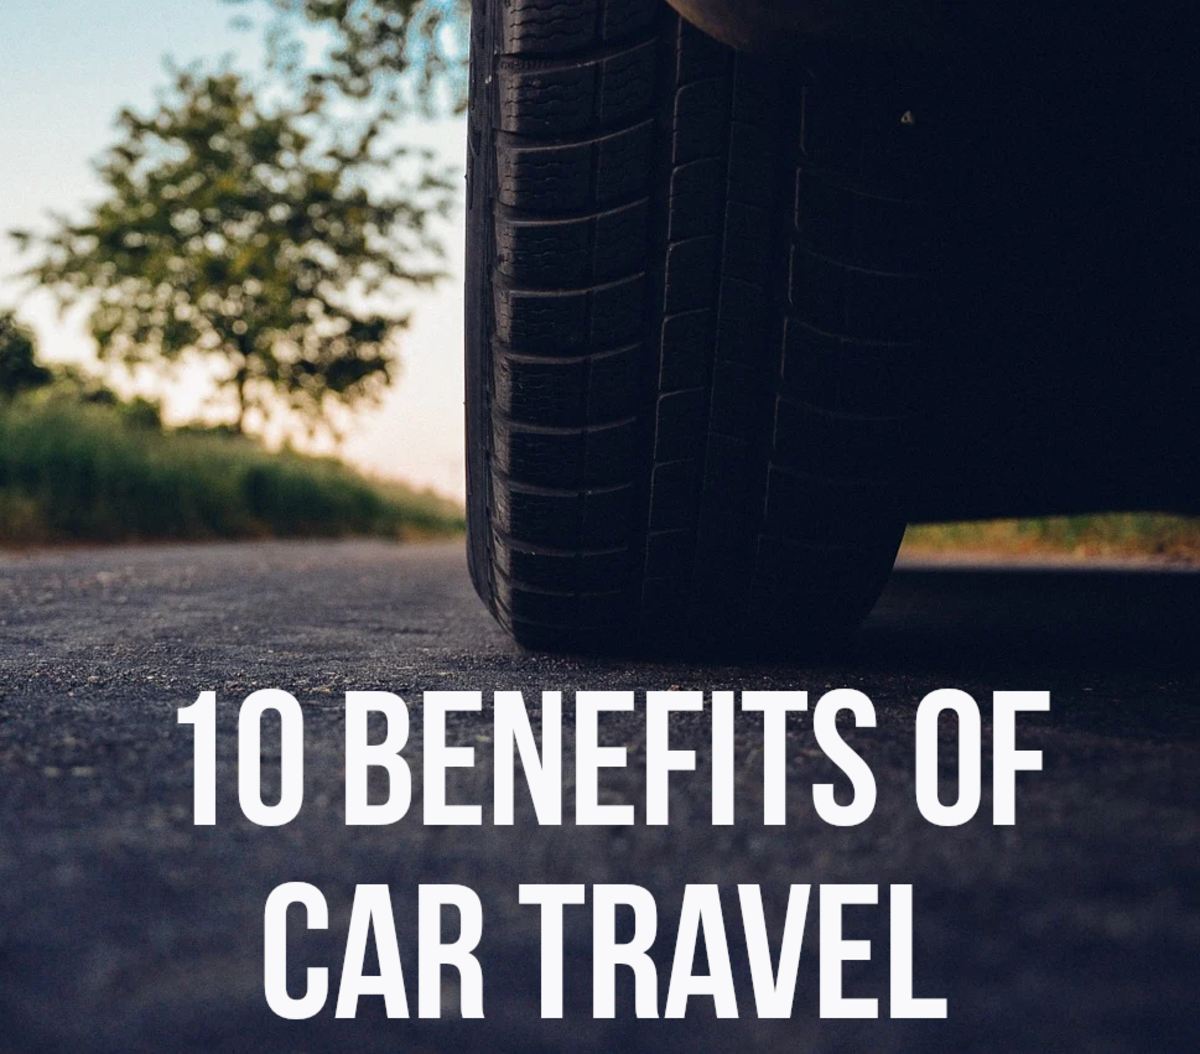 For my 10 advantages of car travel, please read on...